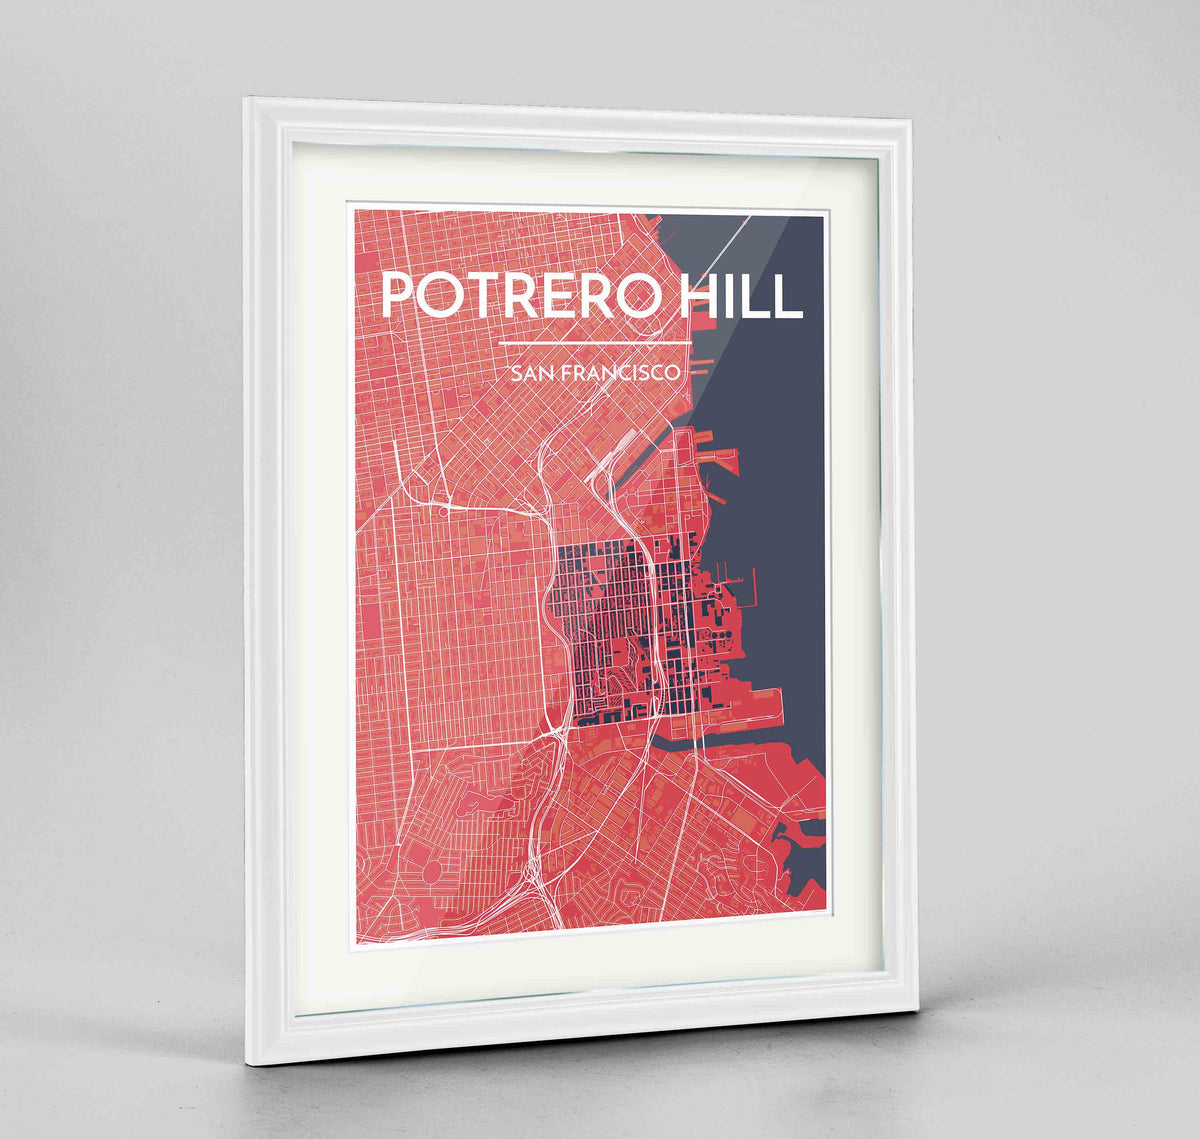 "Framed Potrero Hill San Francisco Map Art Print 24x36"" Traditional White frame Point Two Design Group"